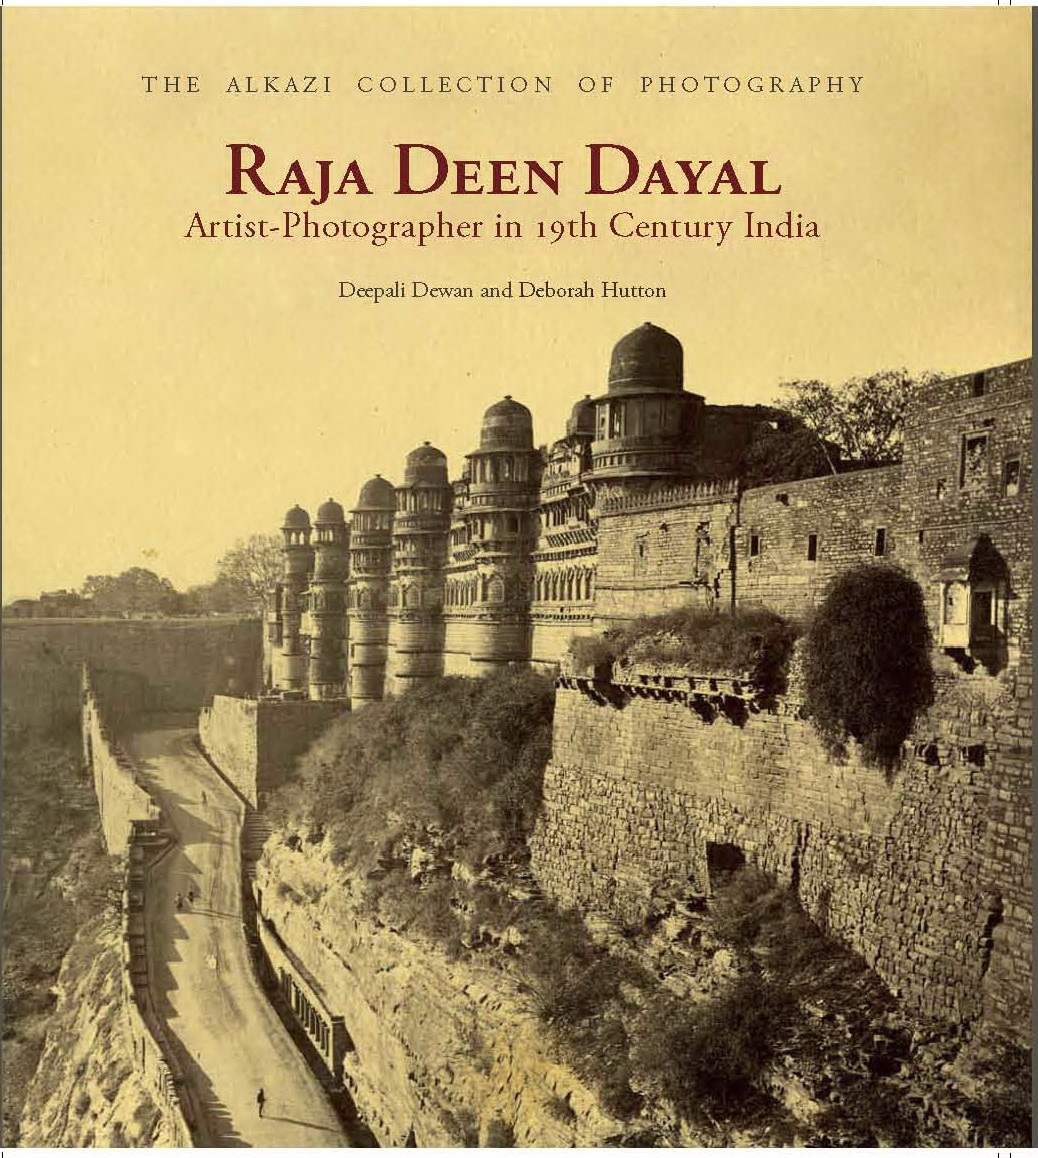 Cover of Raja Deen Dayal: Artist-Photographer in 19th-Century India, by Deepali Dewan and Deborah Hutton, Ahmedabad and New Delhi: Mapin and the Alkazi Collection of Photography, 2013.